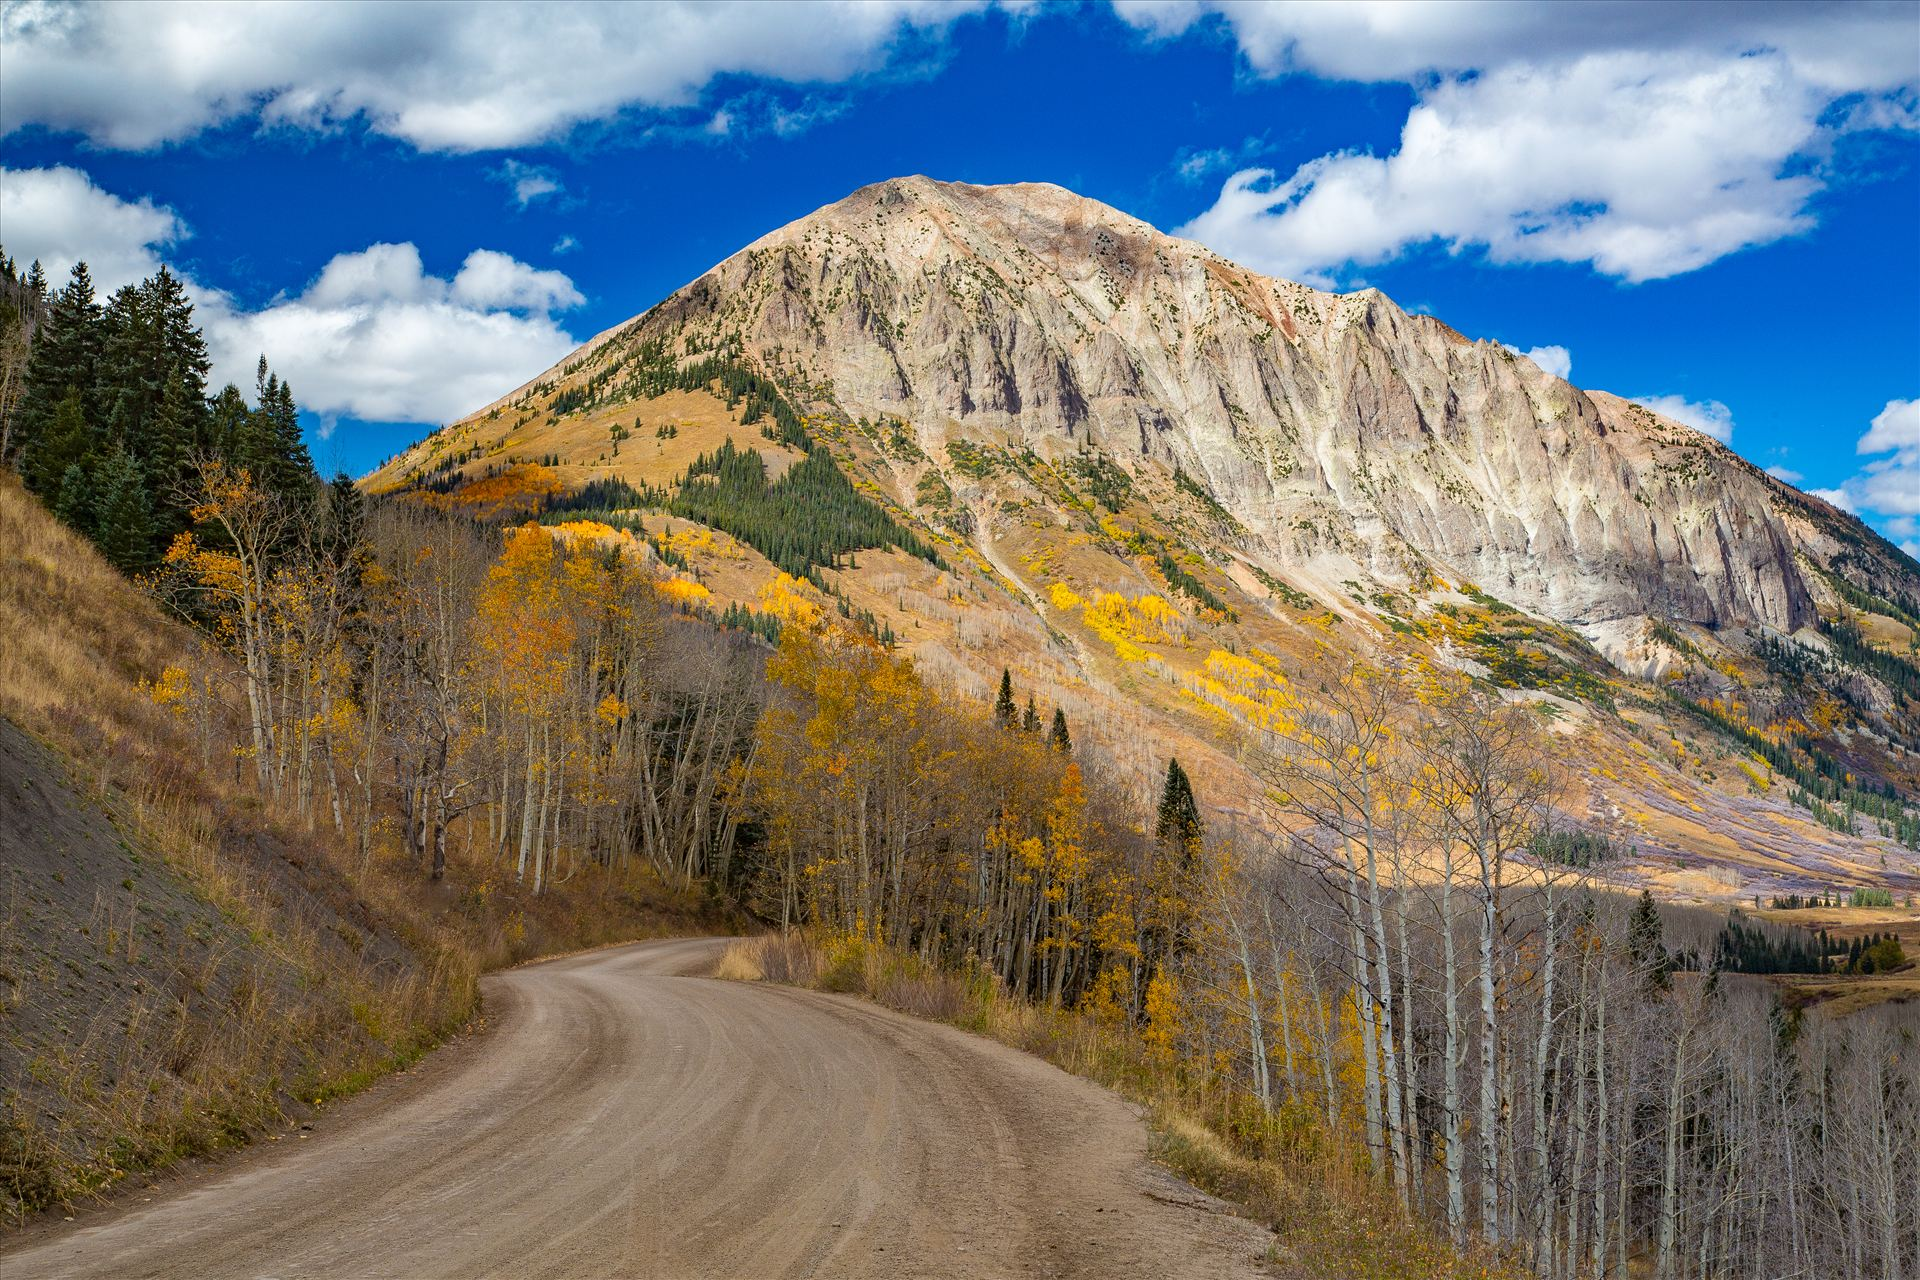 Gothic Road 2 - The view from Gothic Road heading north of Mt Crested Butte in October. by D Scott Smith